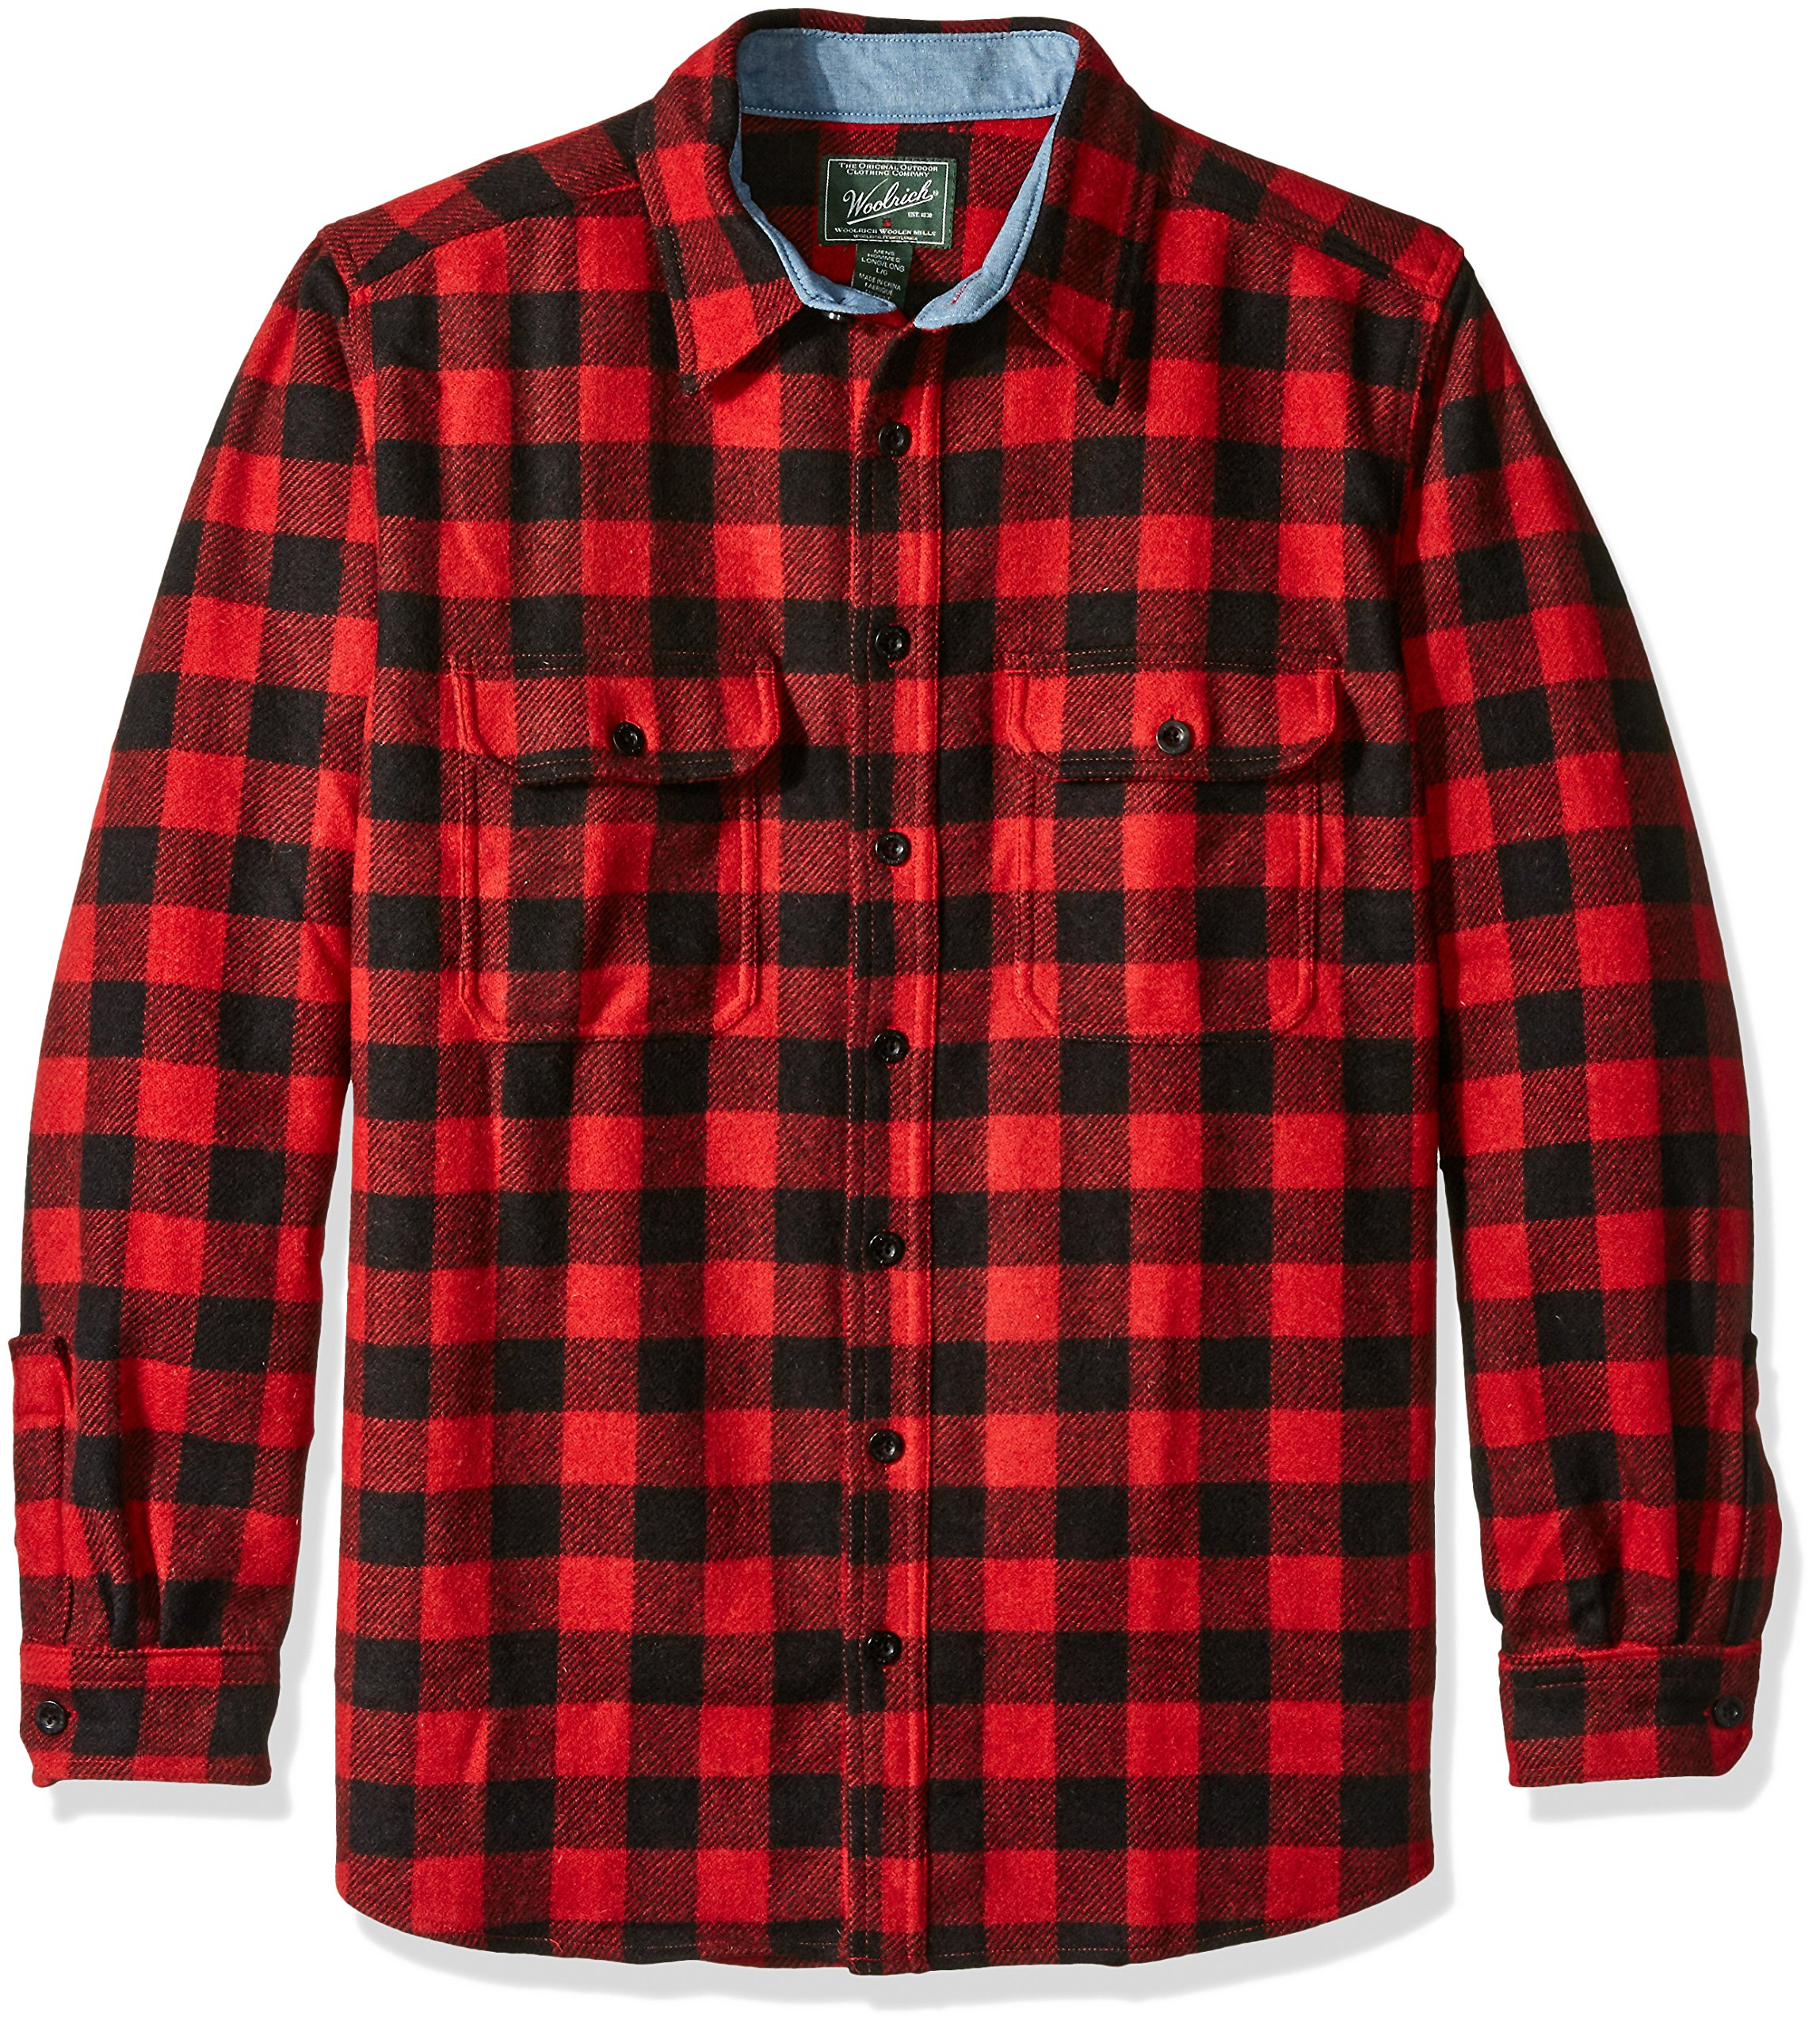 Woolrich Men's Size Wool Buffalo Shirt, Red/Black, Large/Tall